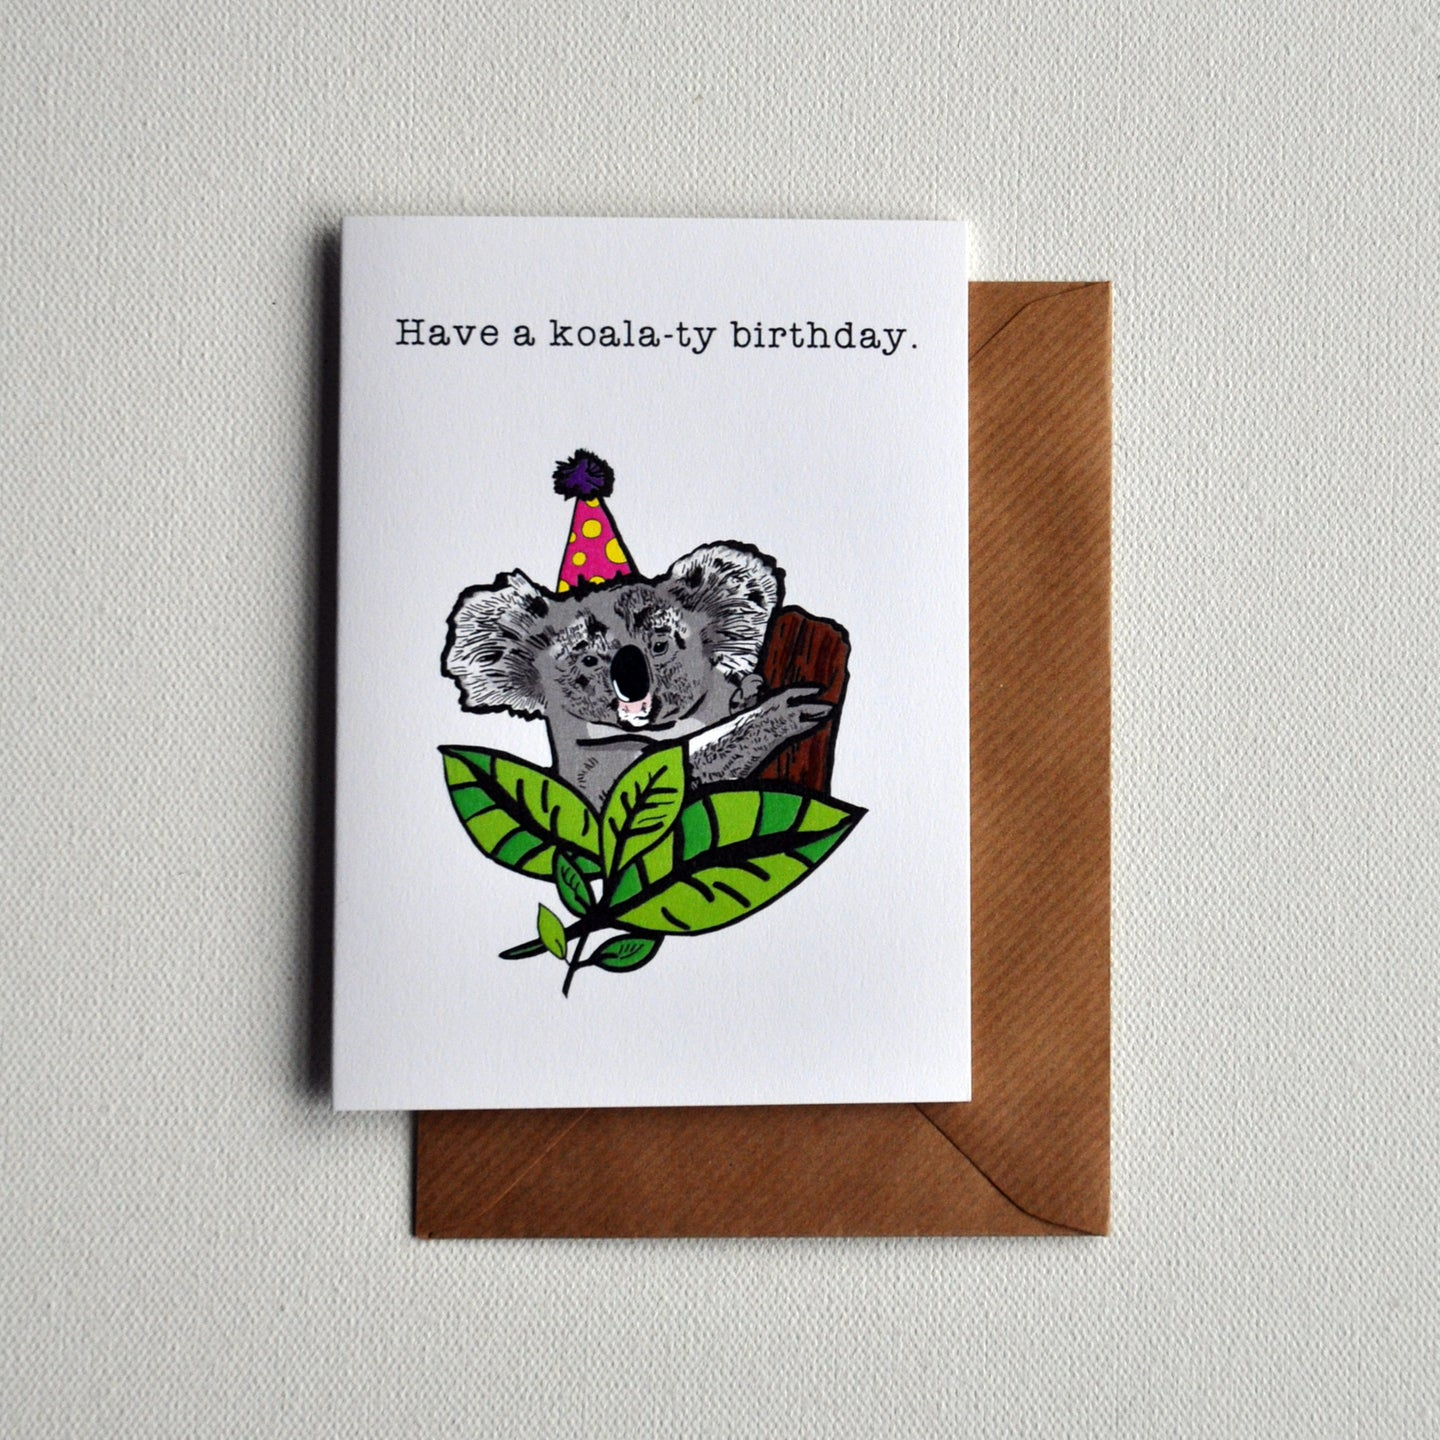 Koala-ty B'day Greetings Card